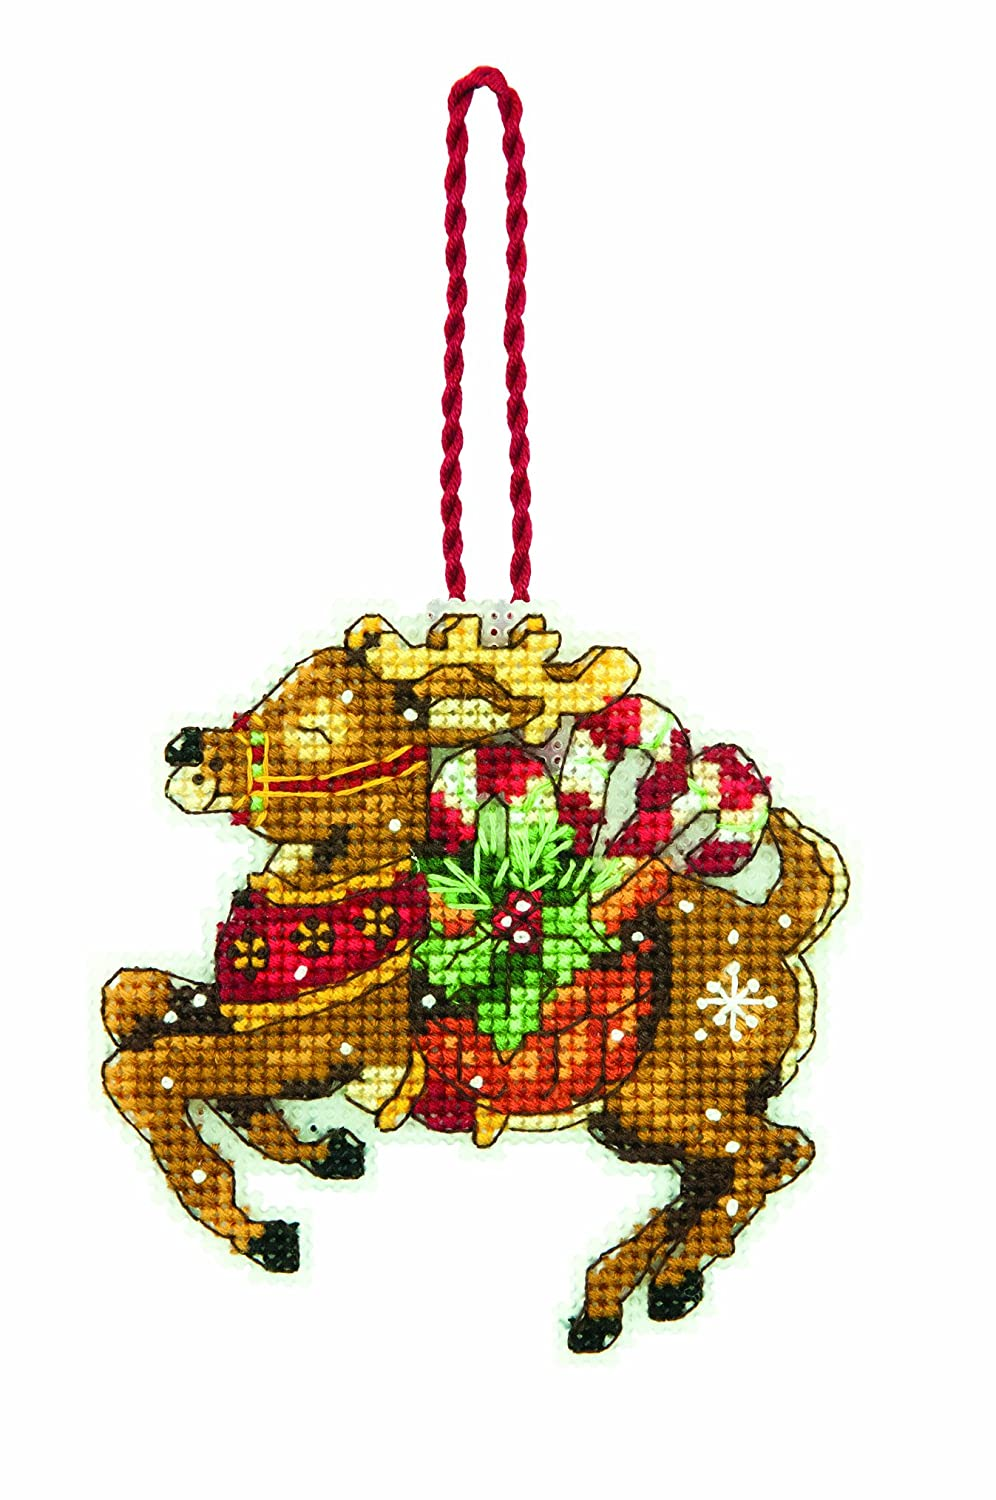 3.5 W x 4.5 H Dimensions Counted Cross Stitch Reindeer Christmas Ornament Kit